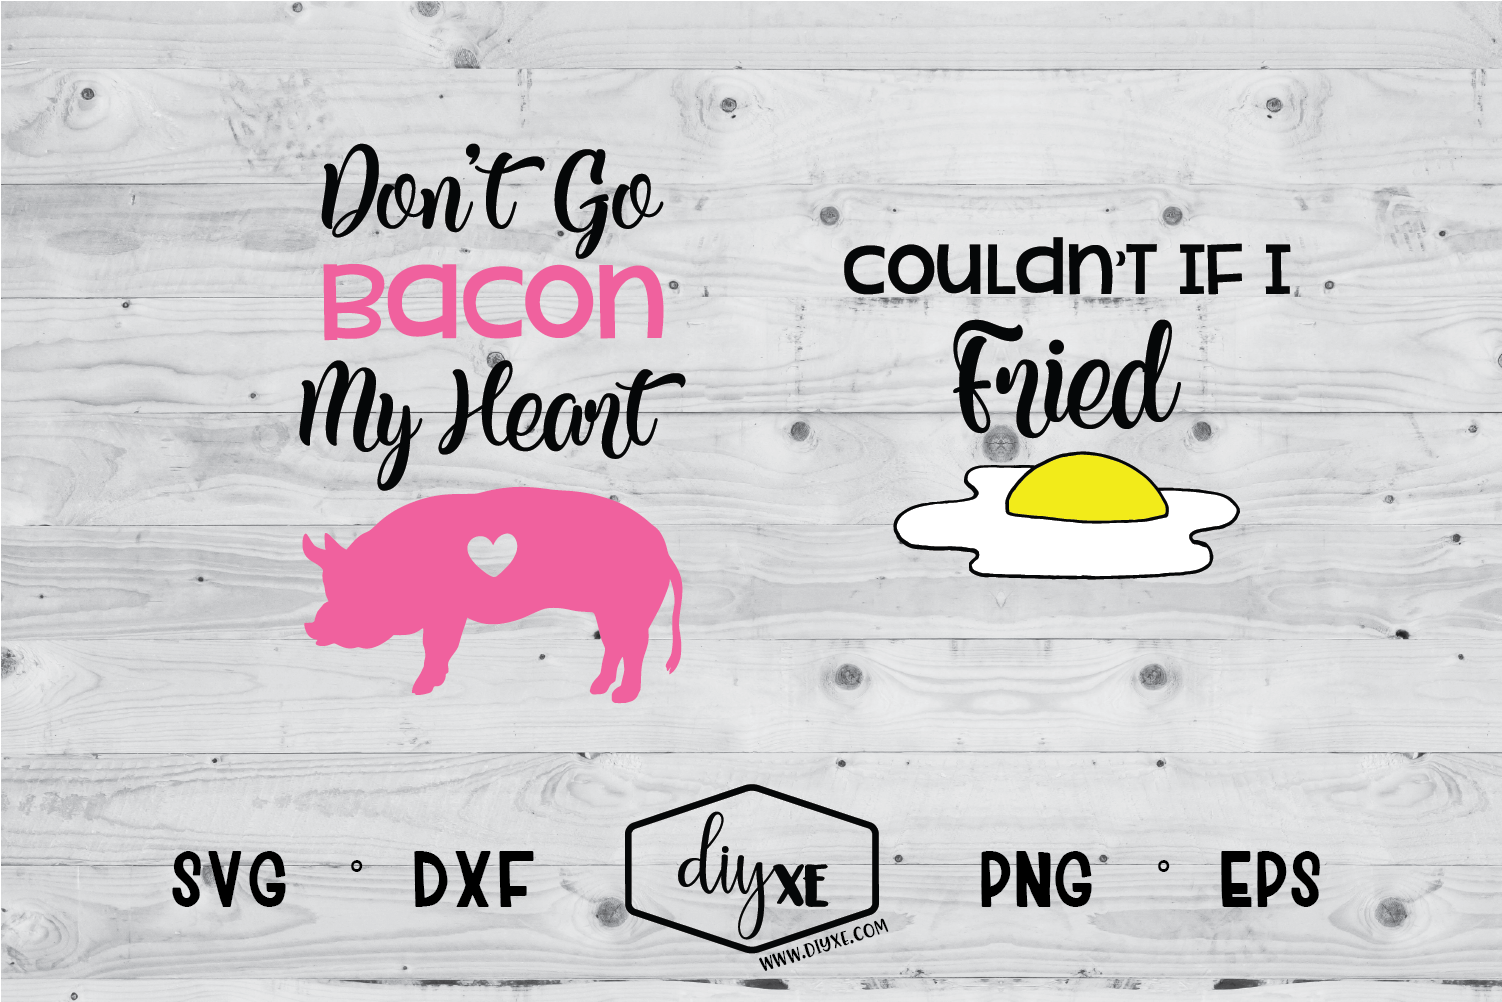 Don't Go Bacon My Heart / Couldn't If I Fried example image 1